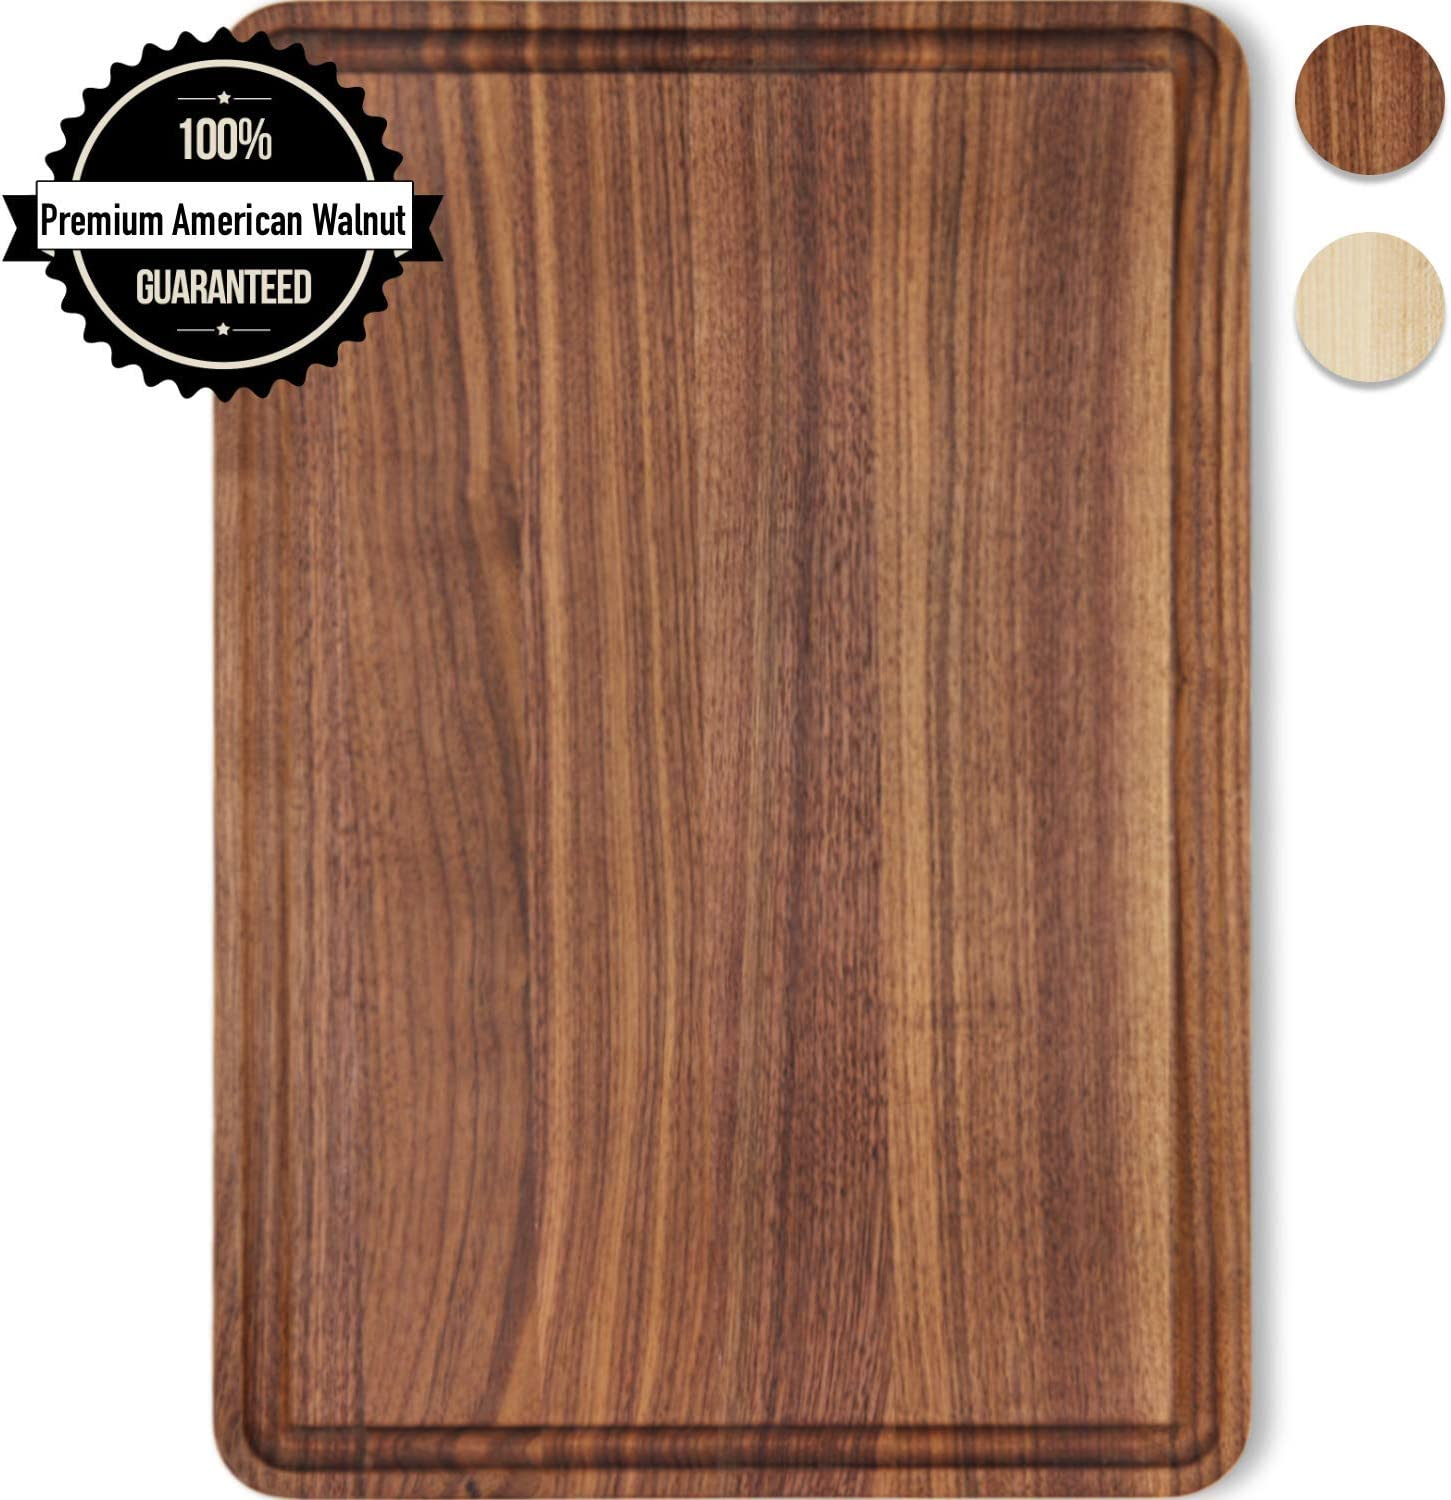 Small Cutting Board Walnut Wood 12x8 Inch Reversible with Juice Groove, Chopping Board Carving Cheese Charcuterie Serving Handmade by AzrHom